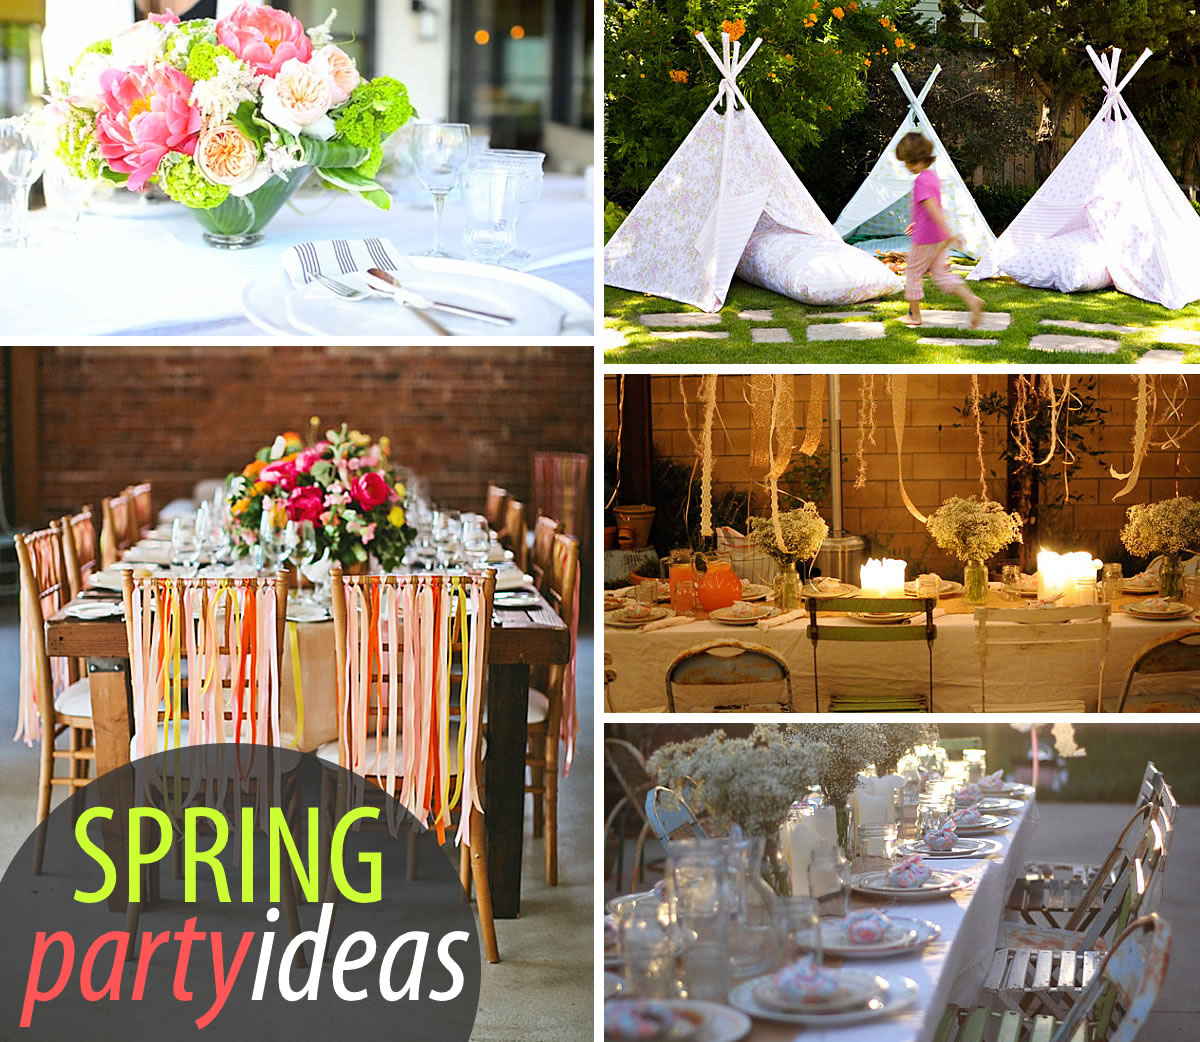 party ideas spring 20 Colorful Spring Party Ideas